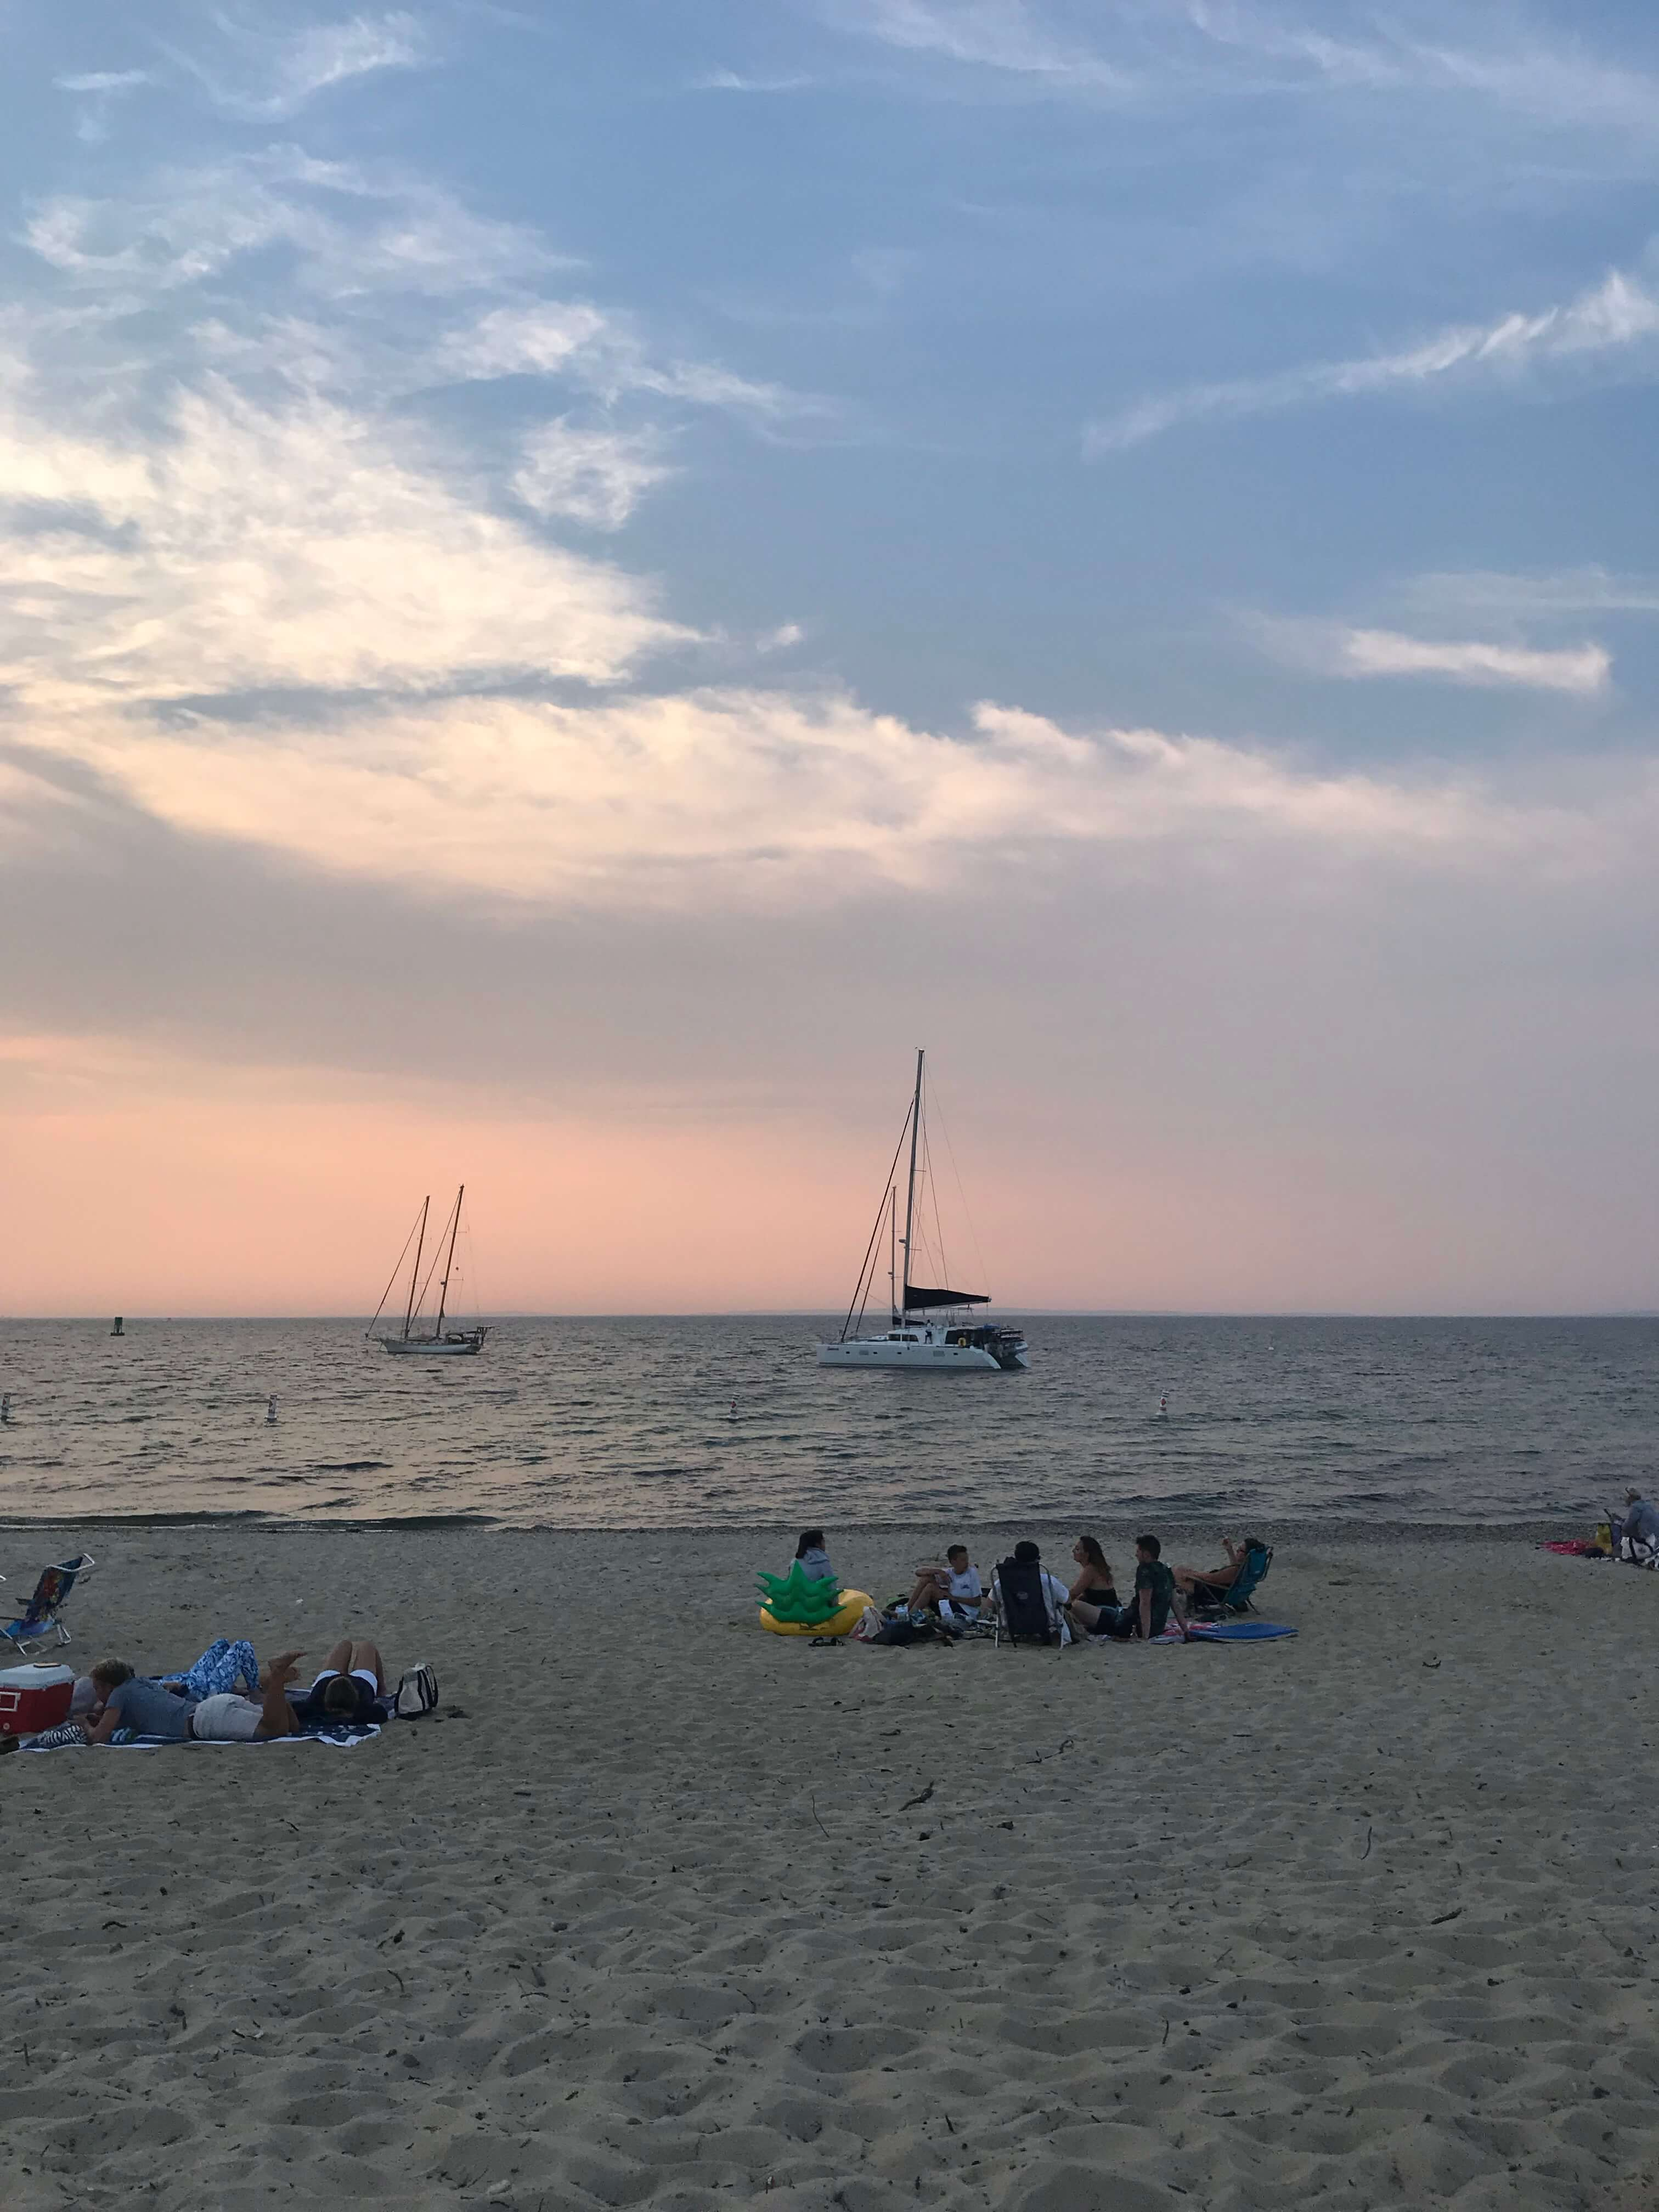 Review of our Stay at Summercamp Hotel in Martha's Vineyard